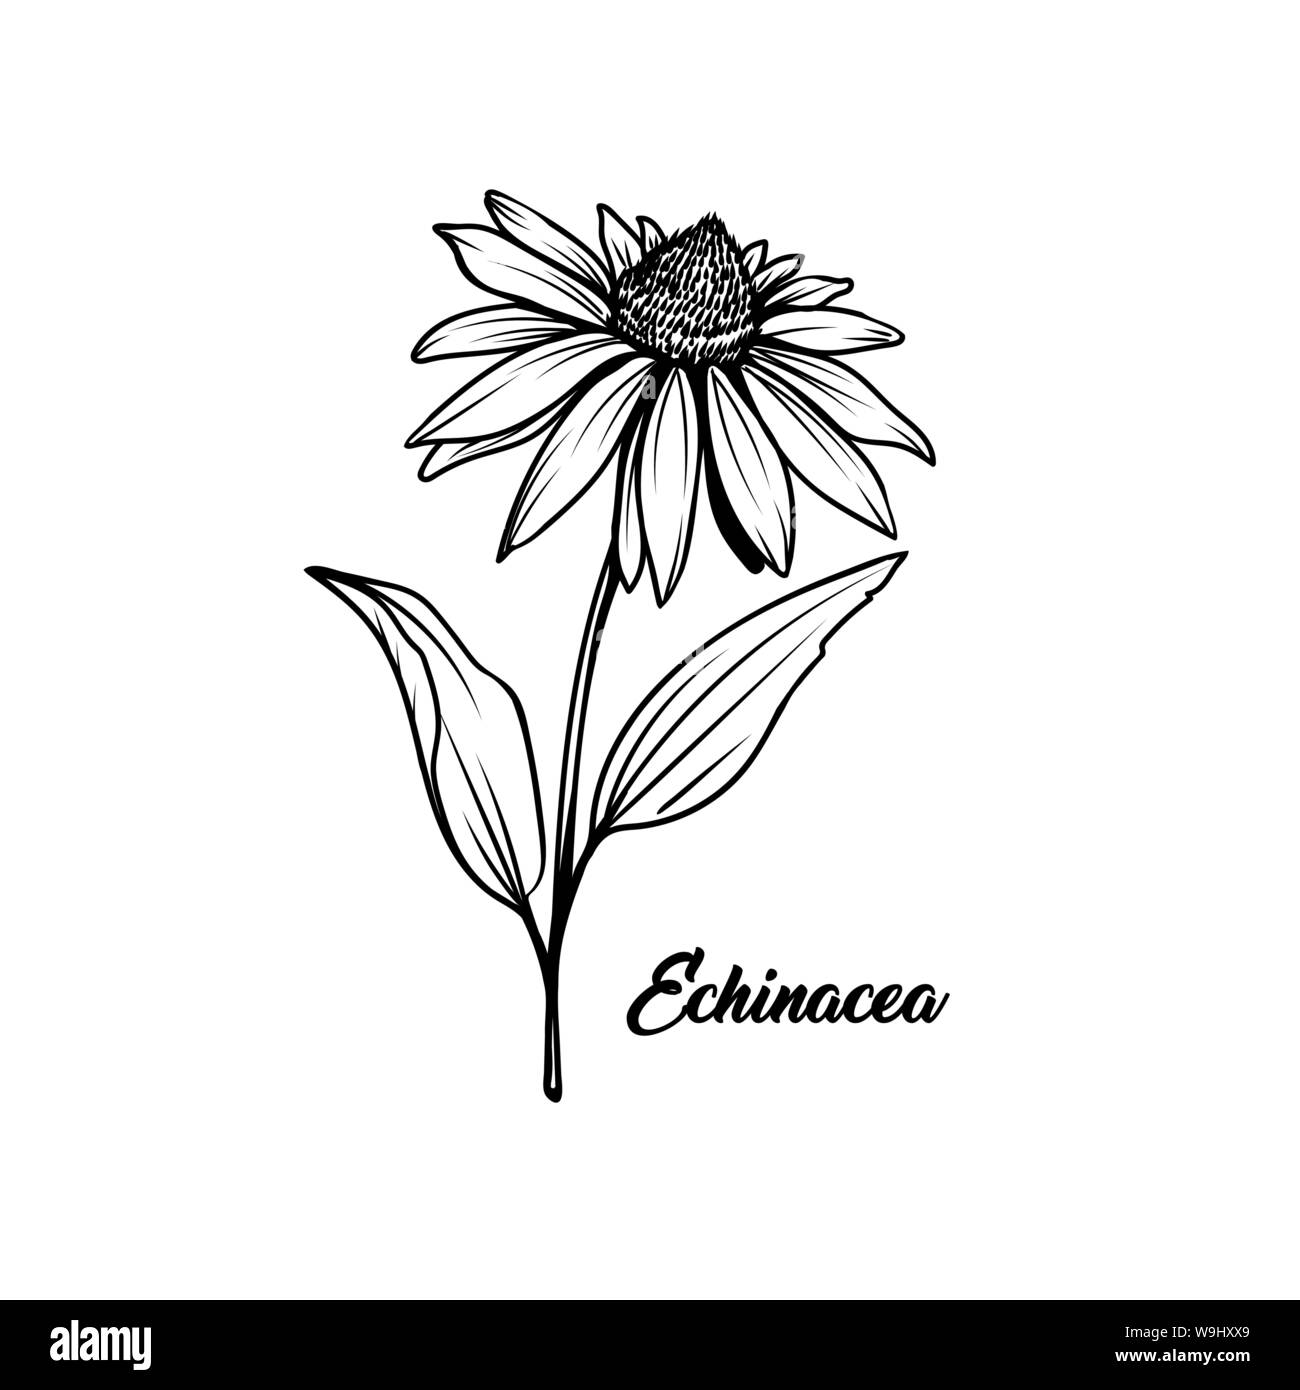 Echinacea Black And White Vector Illustration Beautiful Coneflower Decorative Freehand Drawing Medical Plant Herbal Tea Ingredient Botany Homeopathy Banner Design Element With Lettering Stock Vector Image Art Alamy